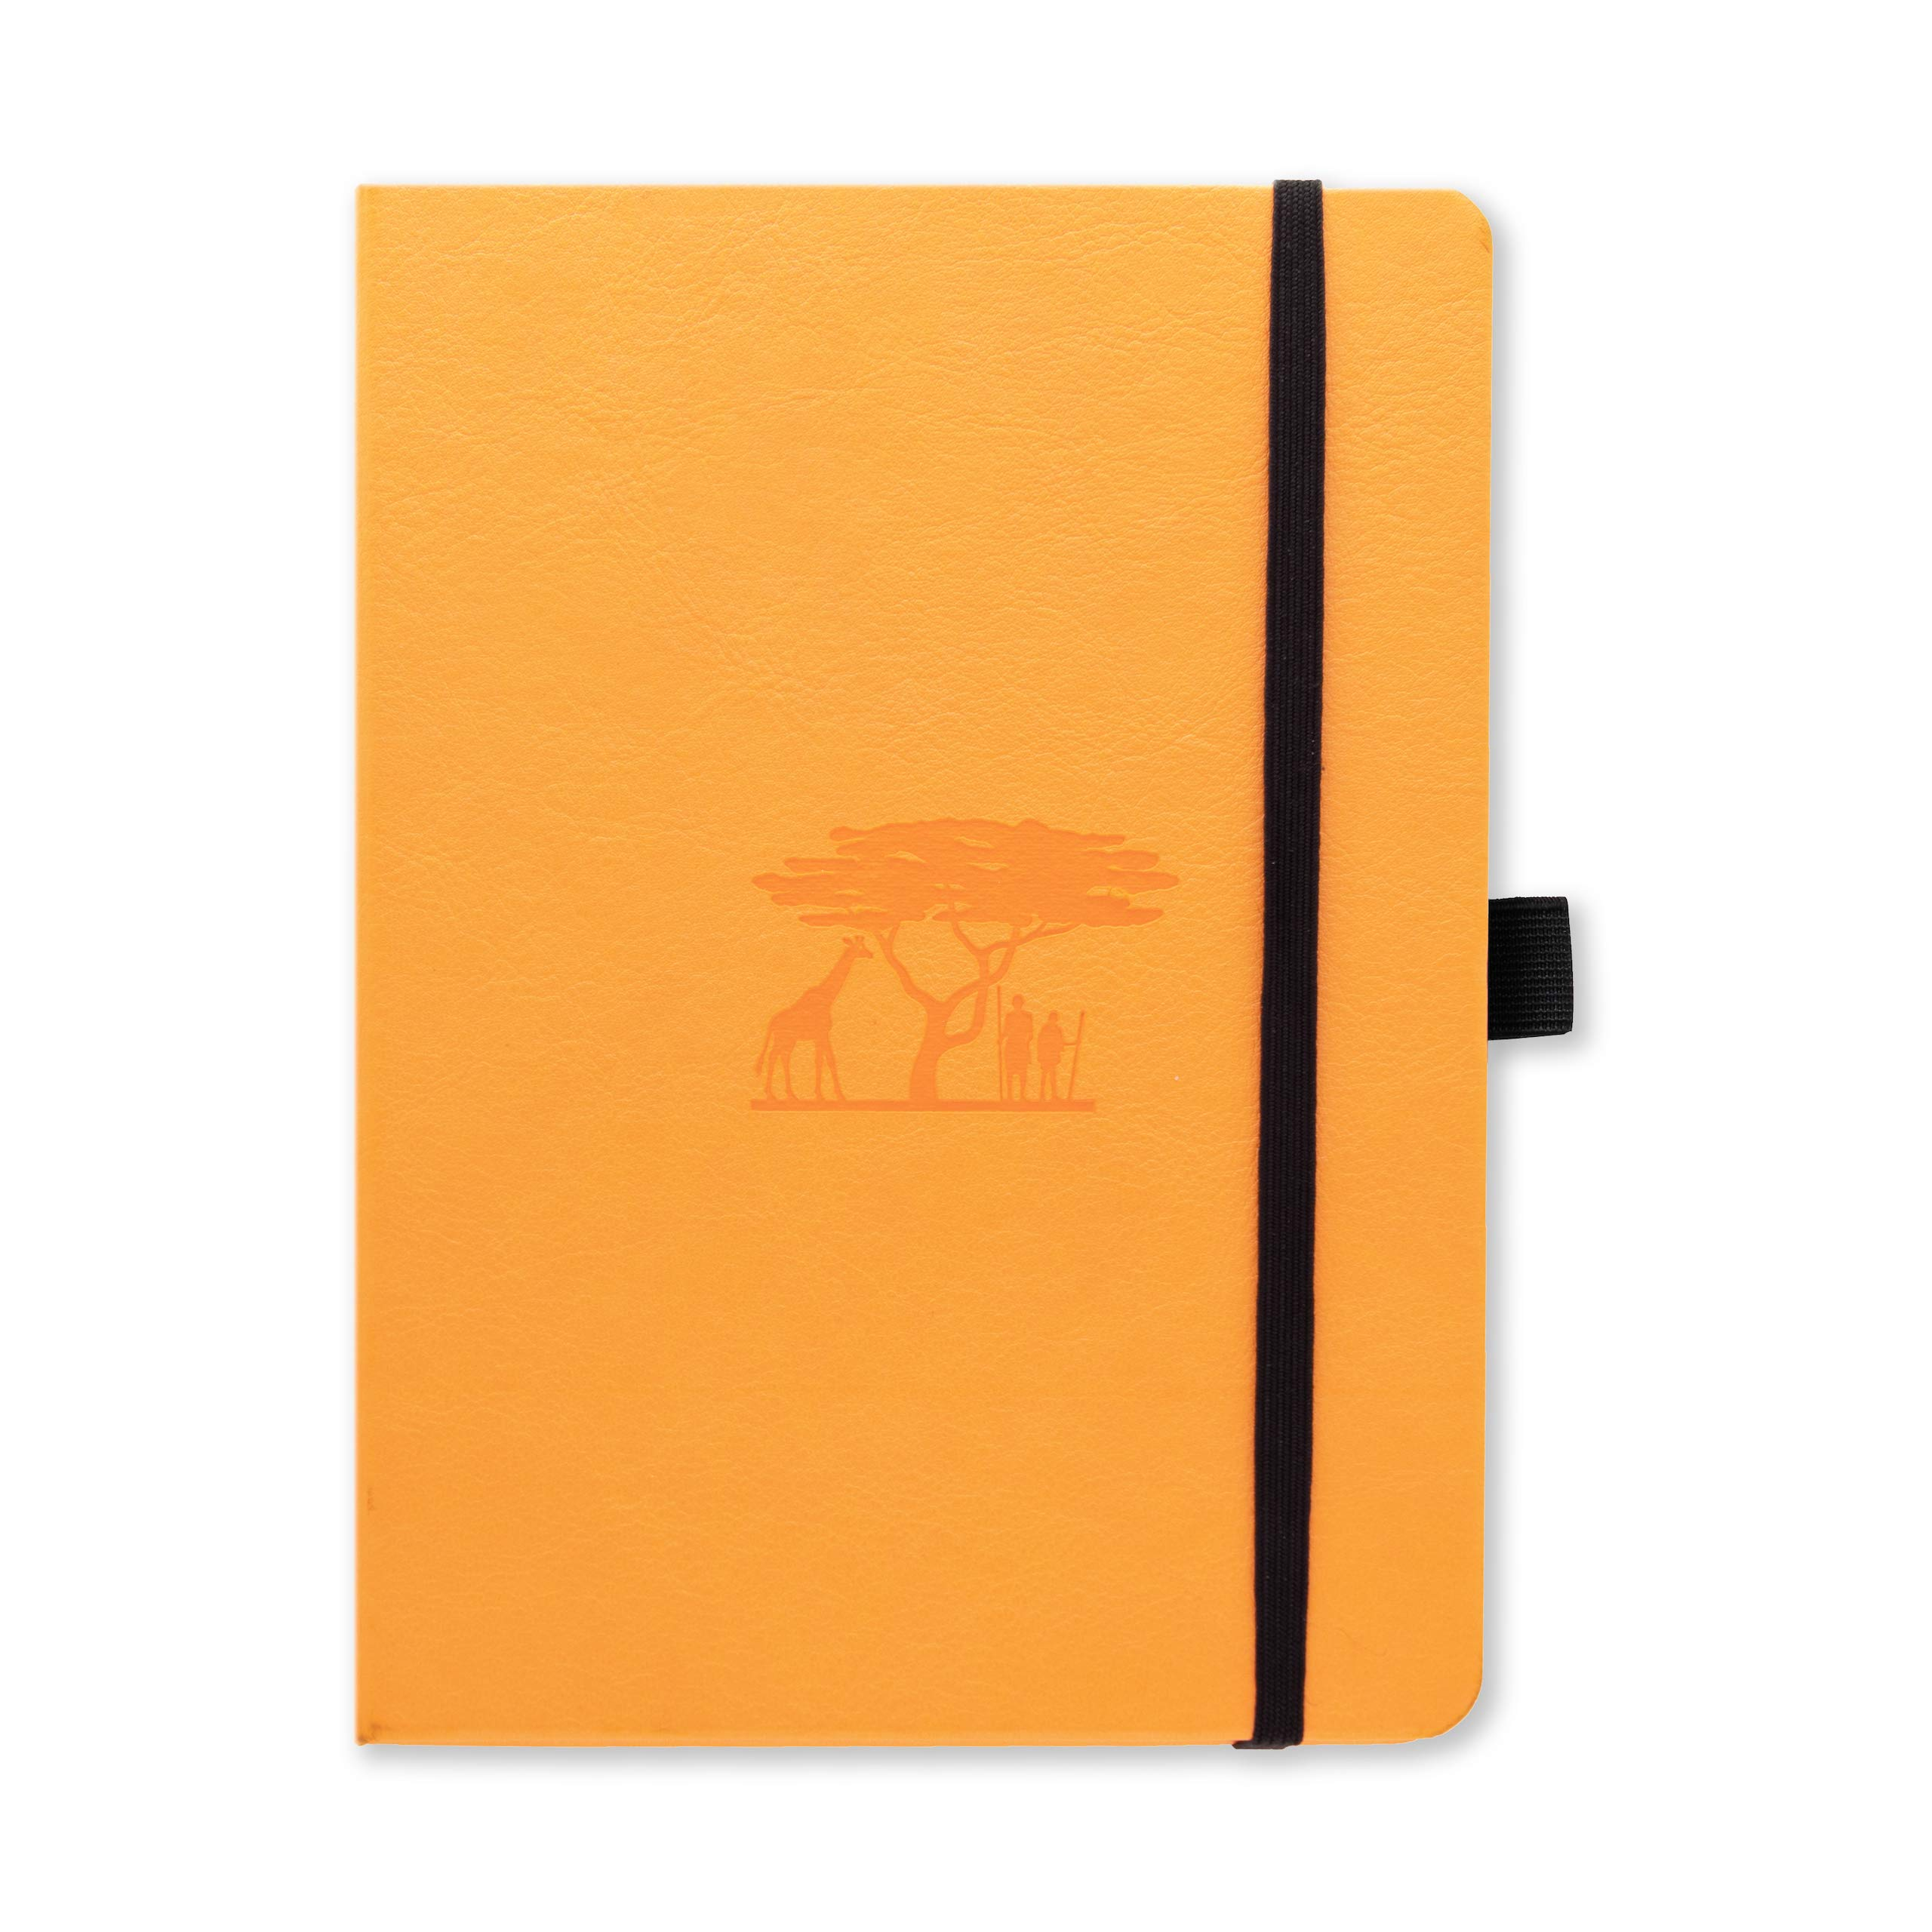 Dingbats Earth Dotted Medium A5+ Hardcover Journal - PU Leather, FP Proof 100gsm Coated Cream Paper, Numbered Pages, Inner Pocket, Elastic Closure, Pen Holder, 2 Bookmarks (Tangerine Serengeti)